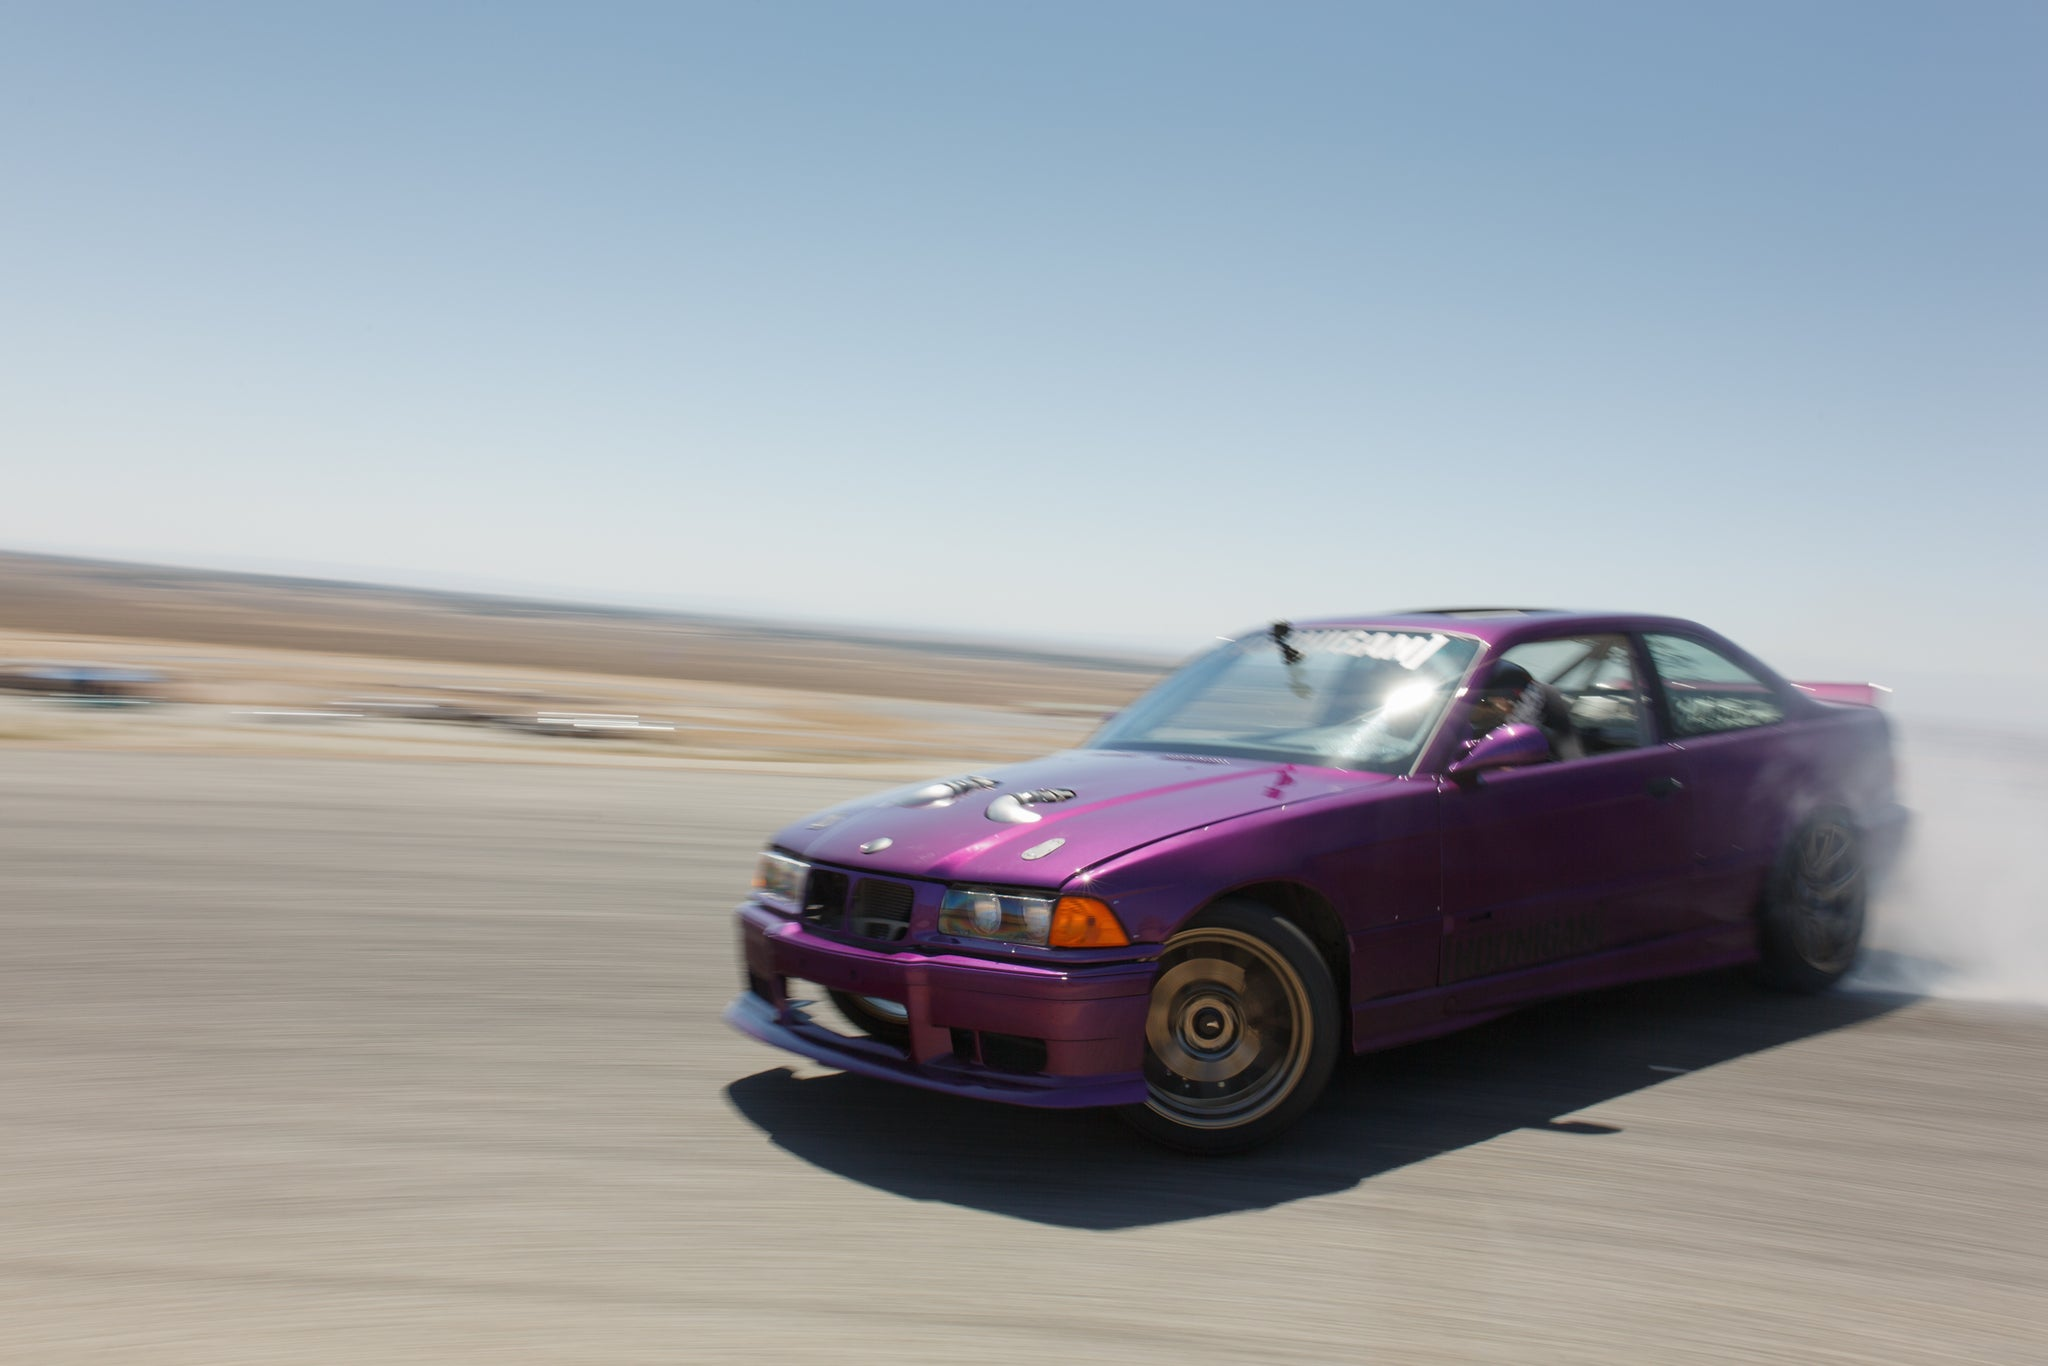 Thrash testing our Scrapyard M3 Build: Knuckle Busters FINALE